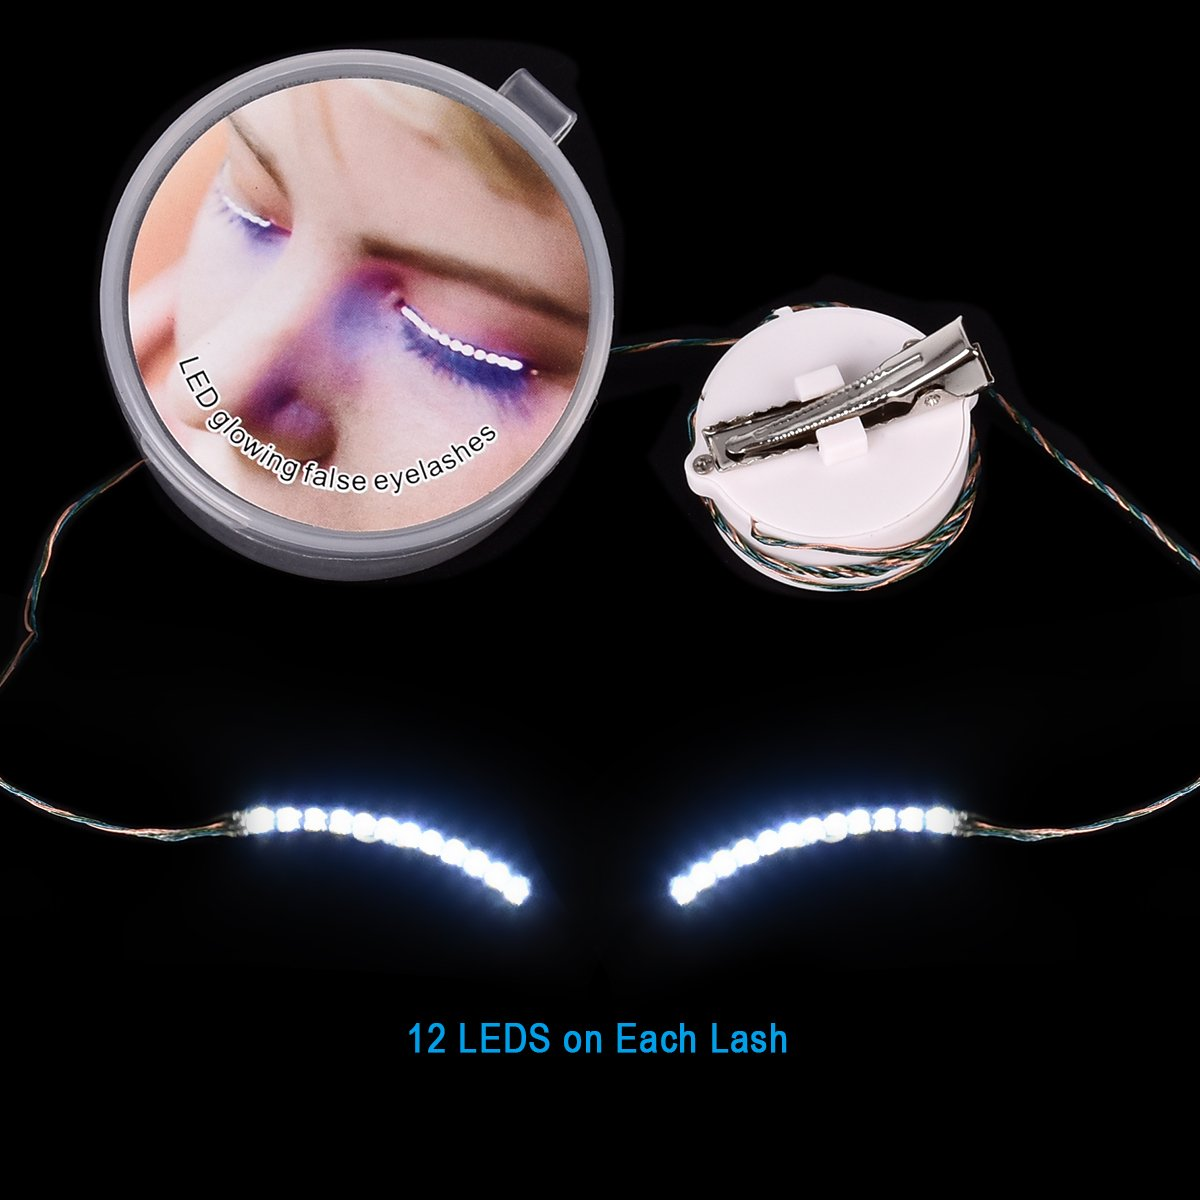 Homate LED Eyelashes, Waterproof LED Light F. Lashes Luminous Shining Charming Eyelid Tape with 7 Modes to Switch for Party Bar Night Club Concerts Birthday Gift Halloween